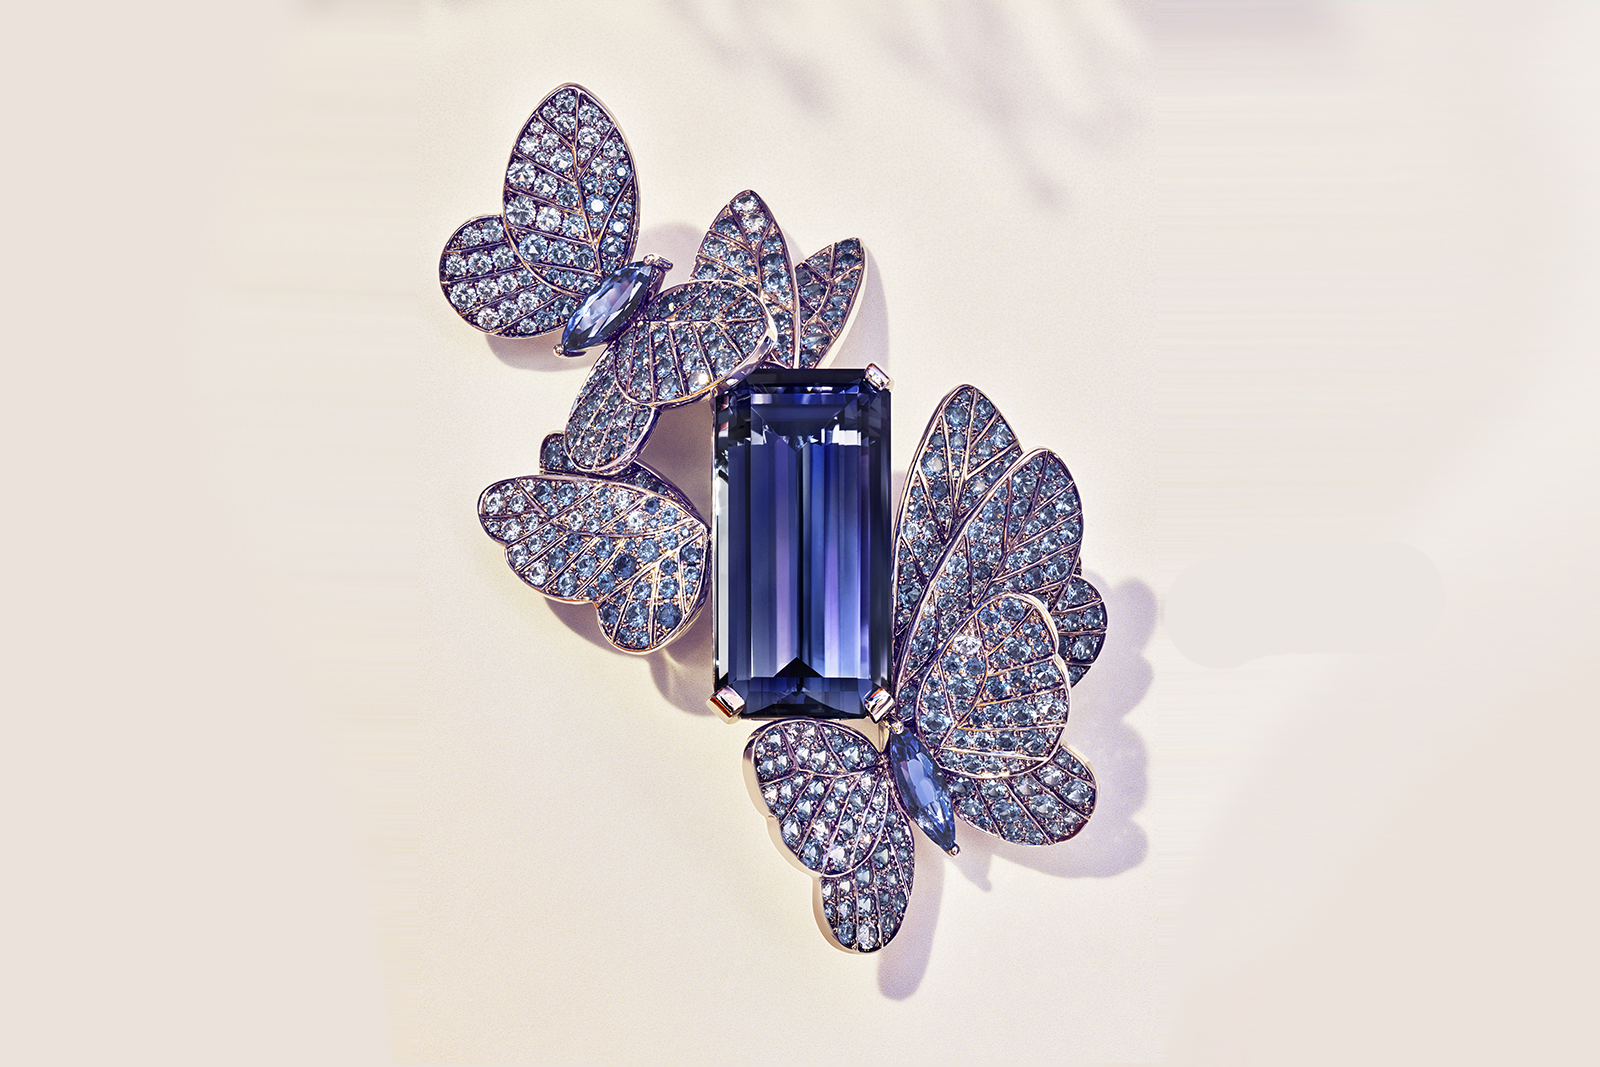 Tiffany & Co. Blue Book 2018 collection brooch in platinum with an emerald-cut tanzanite of over 27 carats, round and marquise sapphires, over five total carats, and round brilliant diamonds